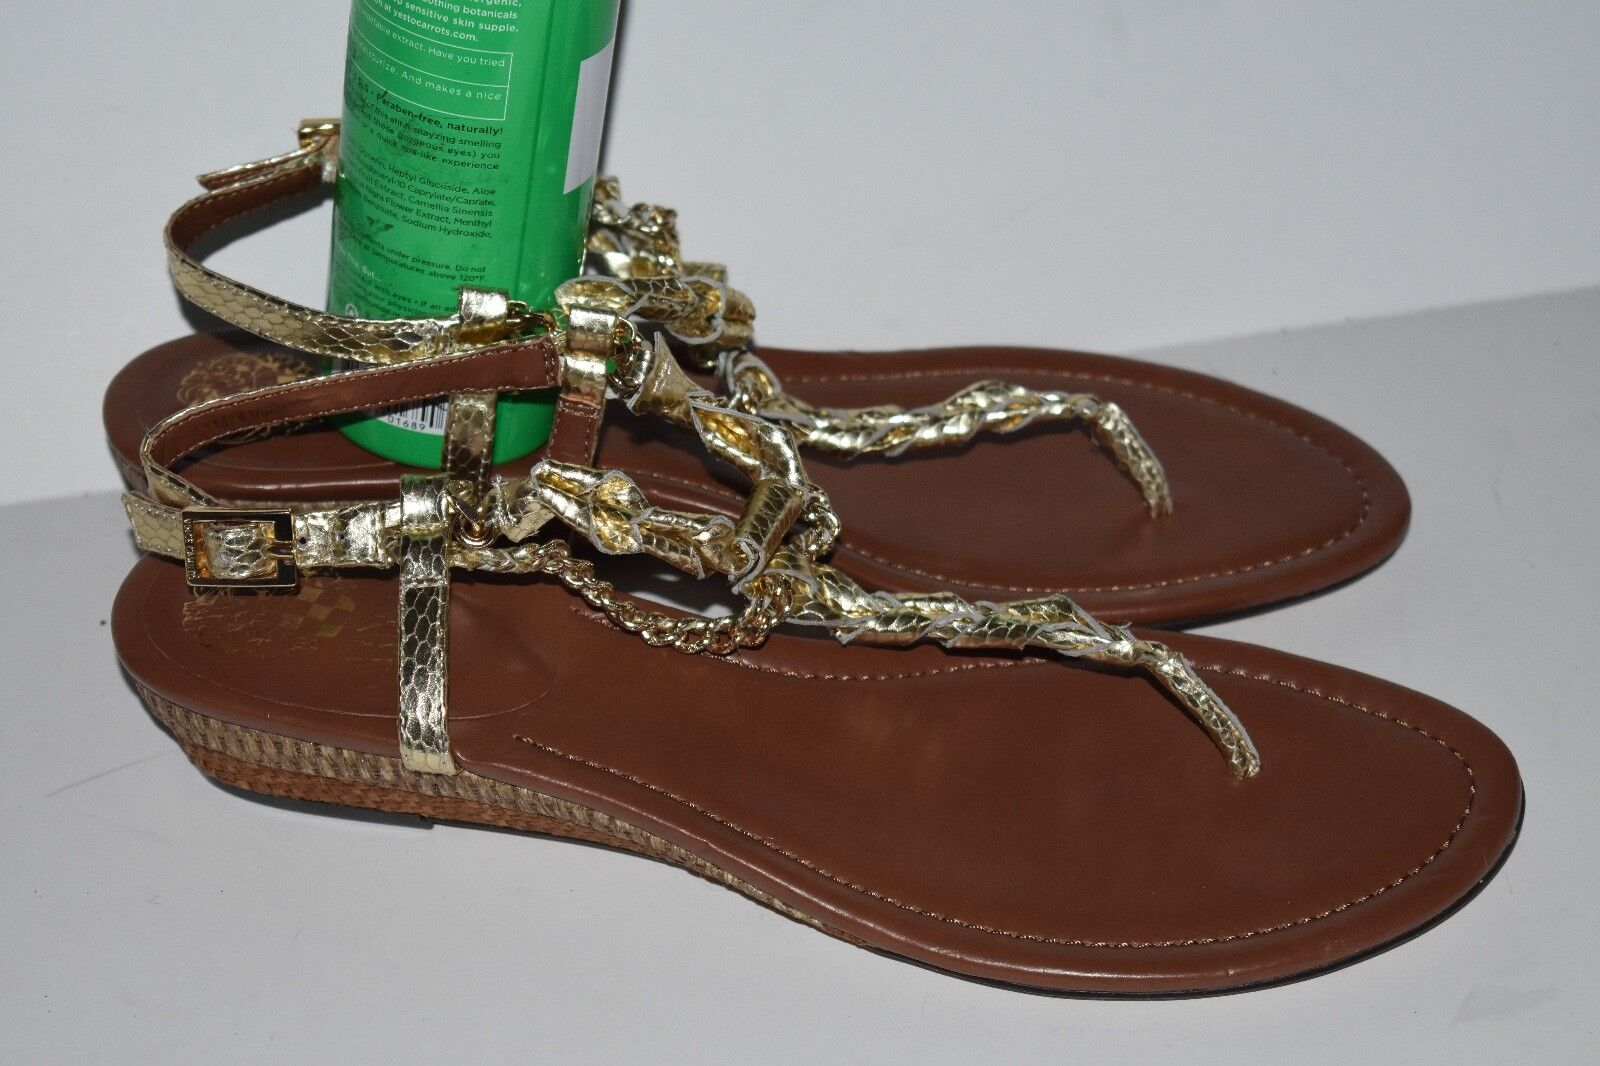 VINCE CAMUTO T-STRAP Thong SANDALS gold Size 11M